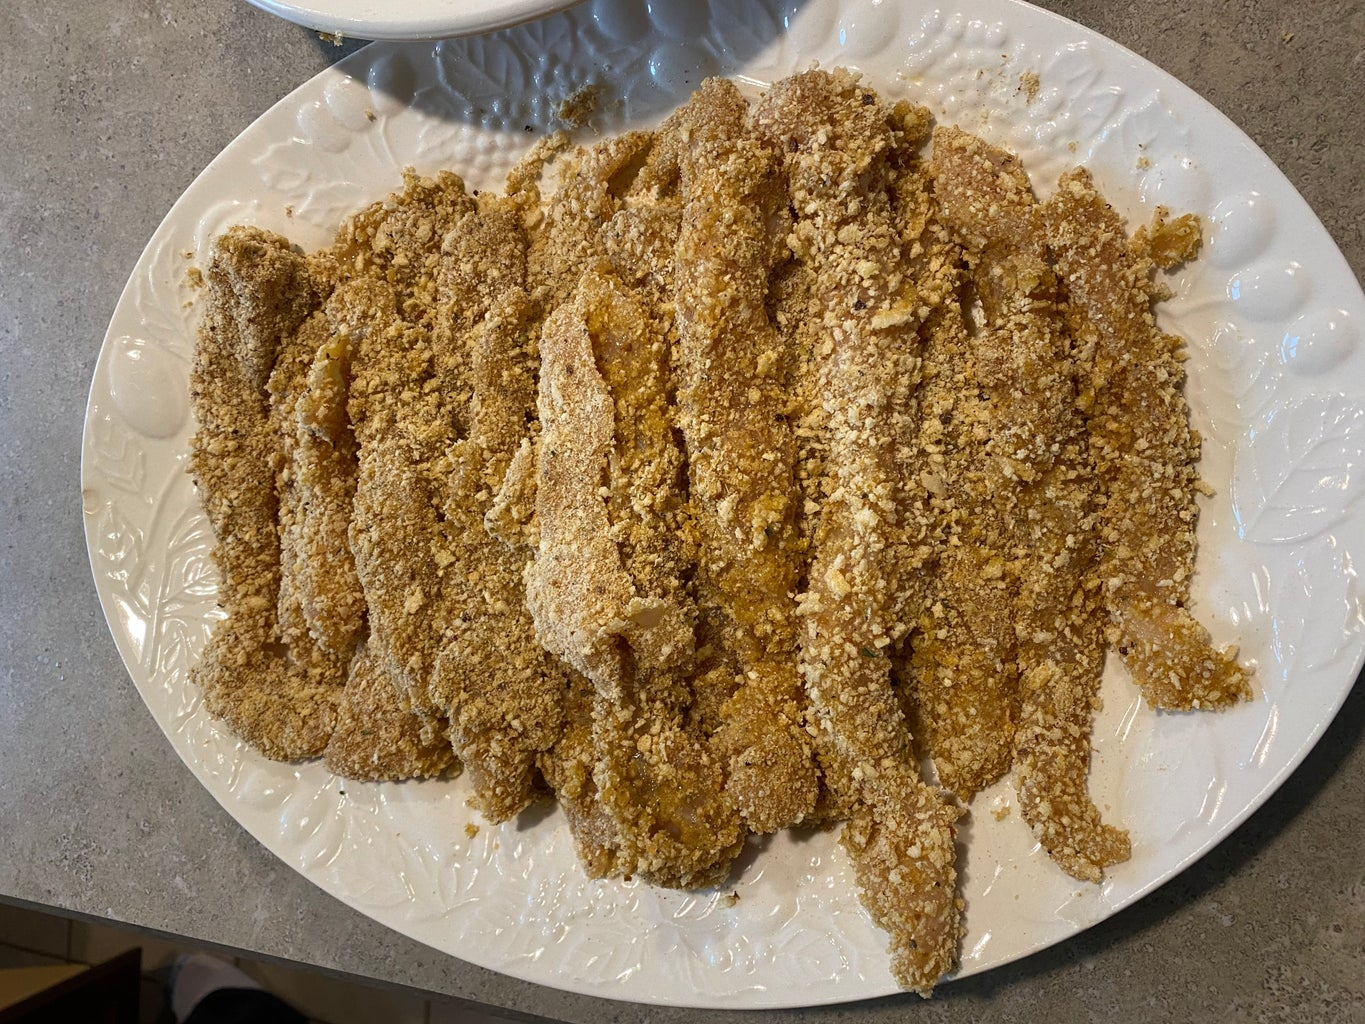 Step 5: Putting the Breading Onto the Chicken